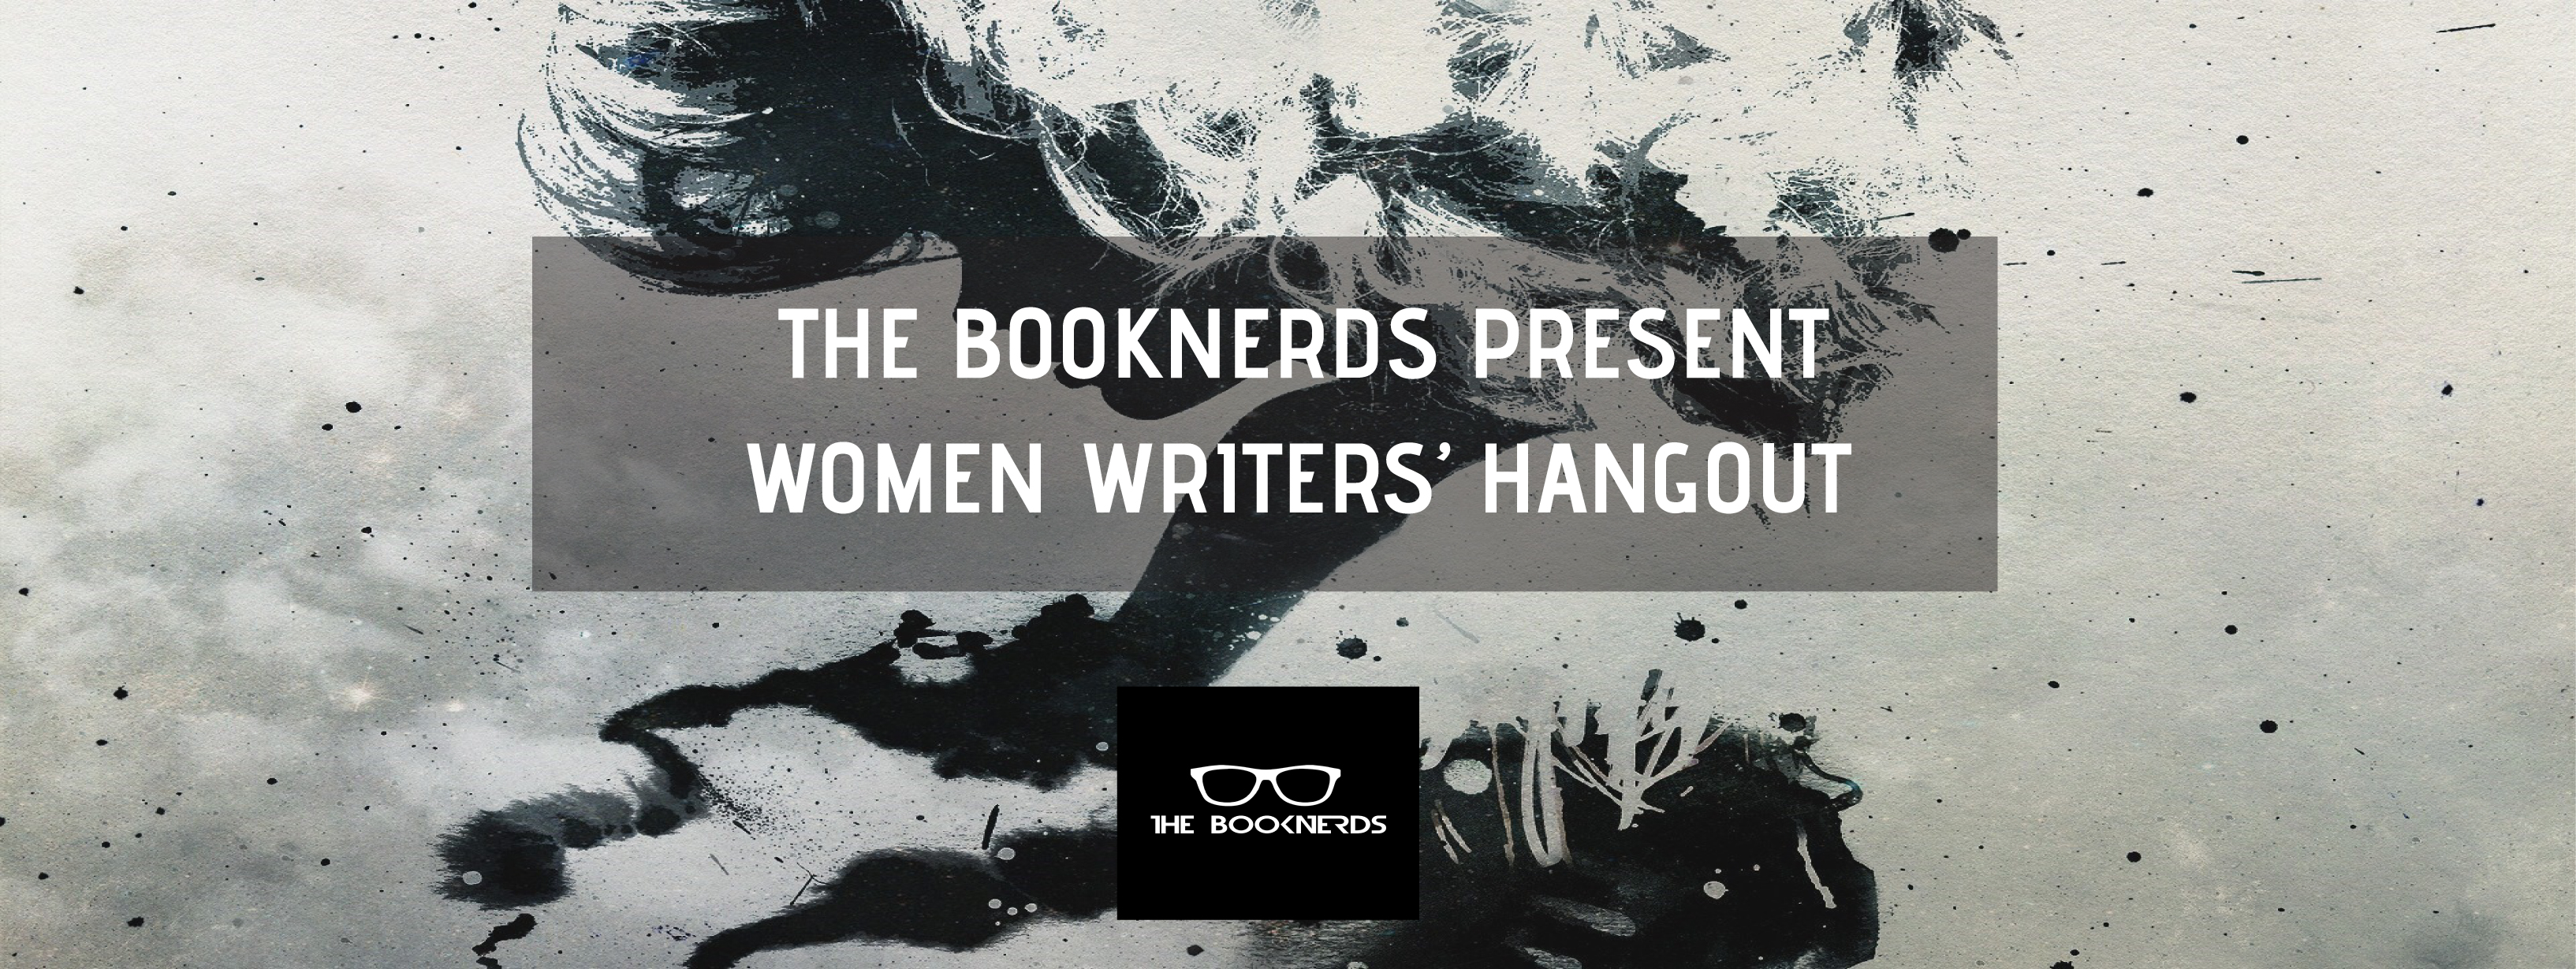 The Booknerds Women Writers